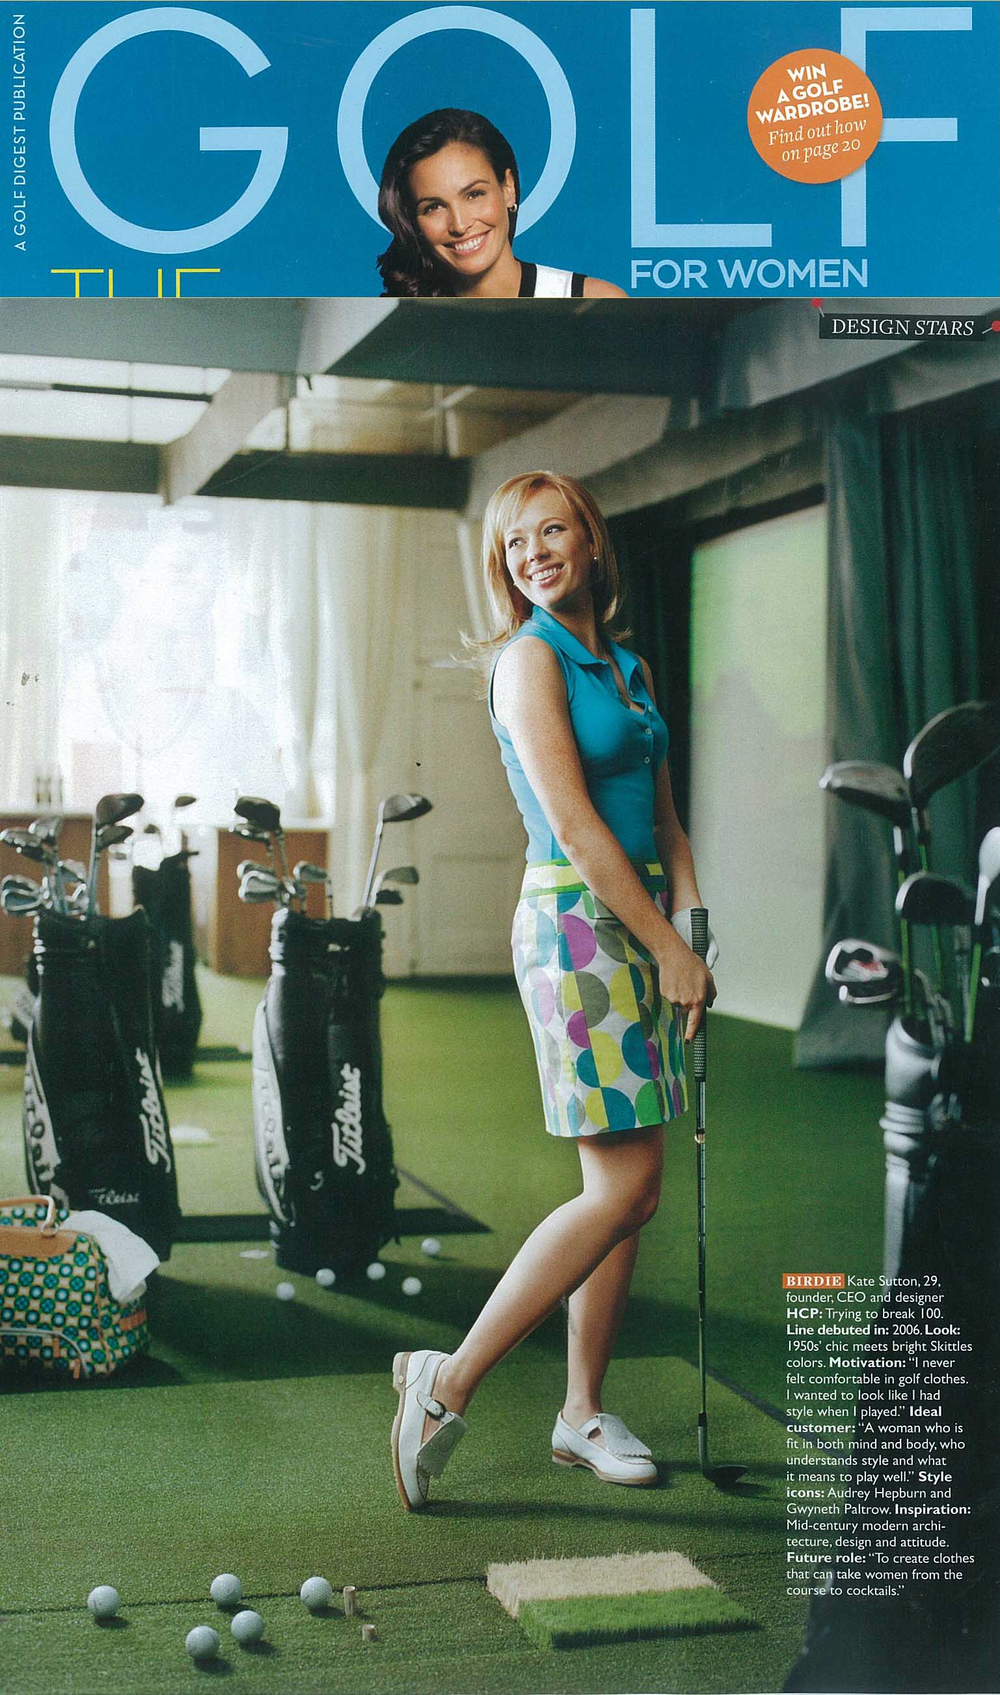 Golf for Women Page 3 Kate Sutton_July 2008.jpg